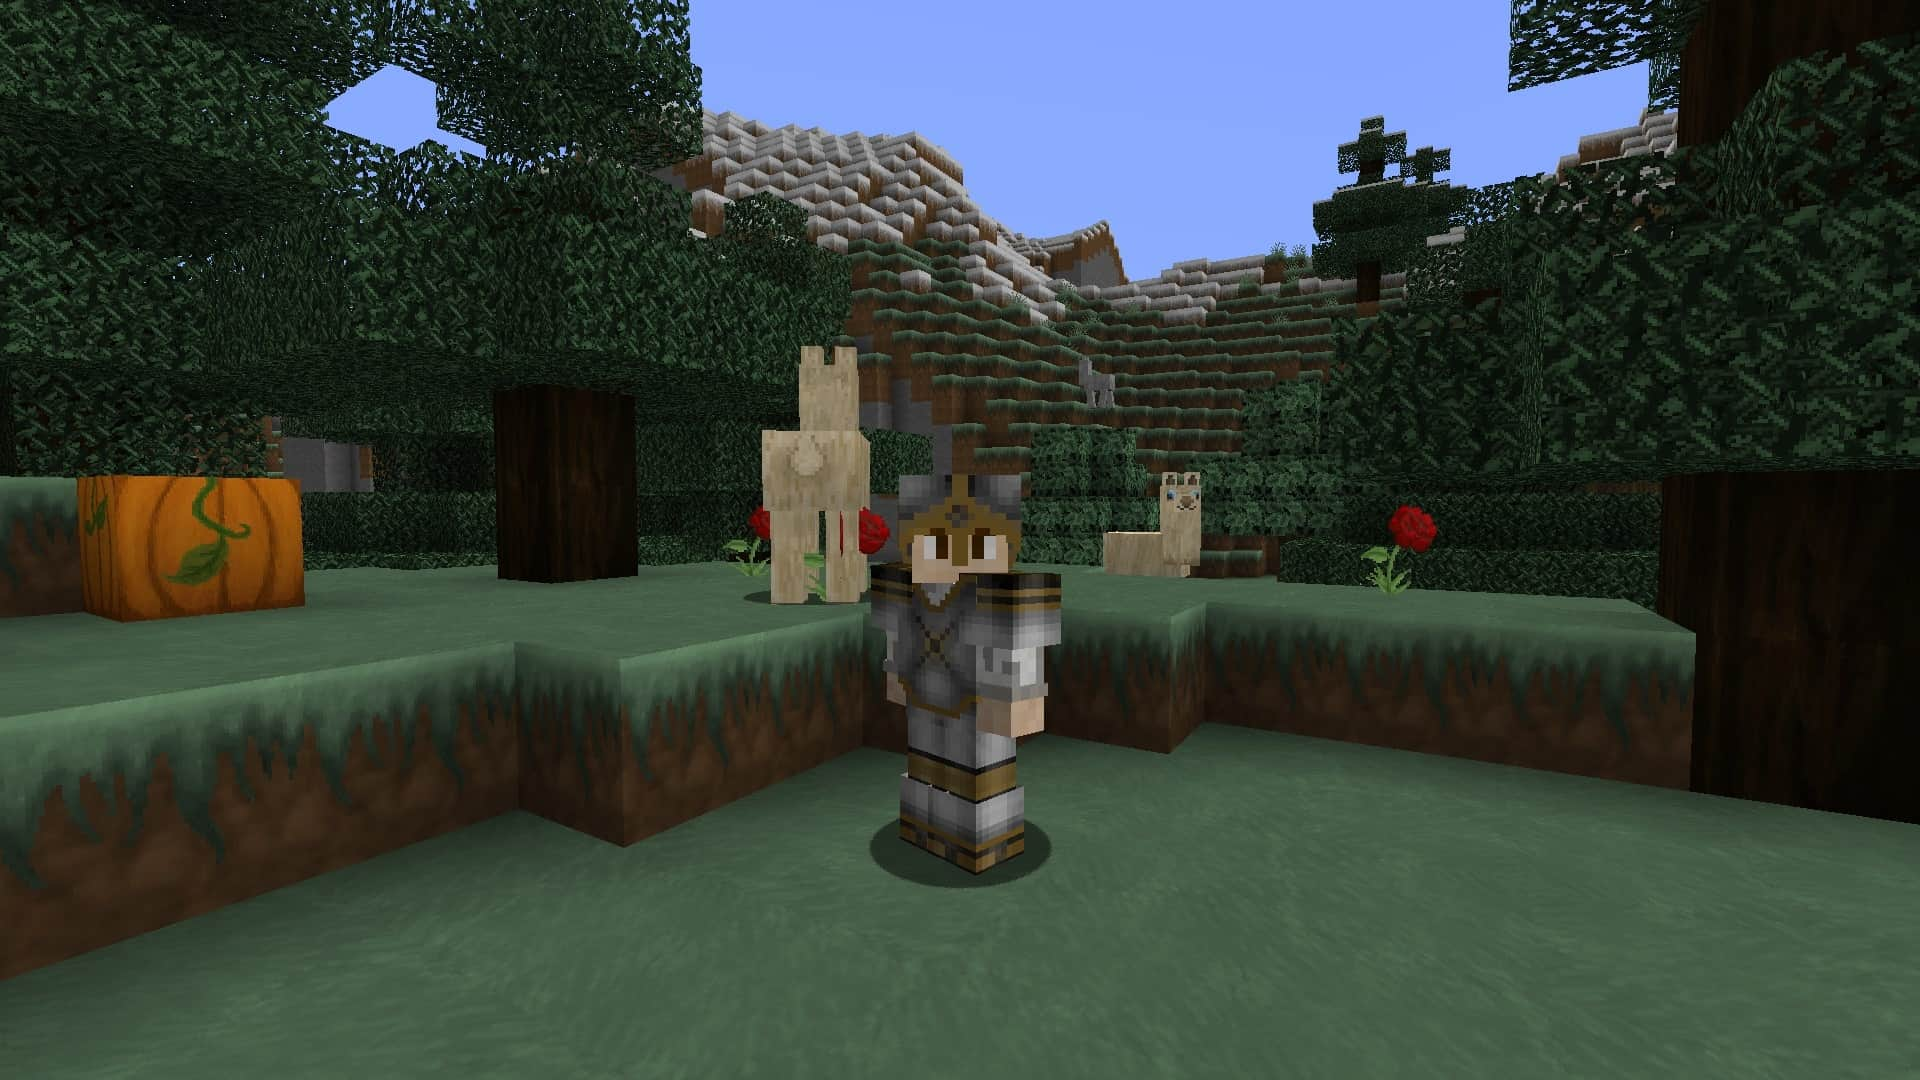 l'armure pvp Minecraft avec le resource pack The Galaxy Pack